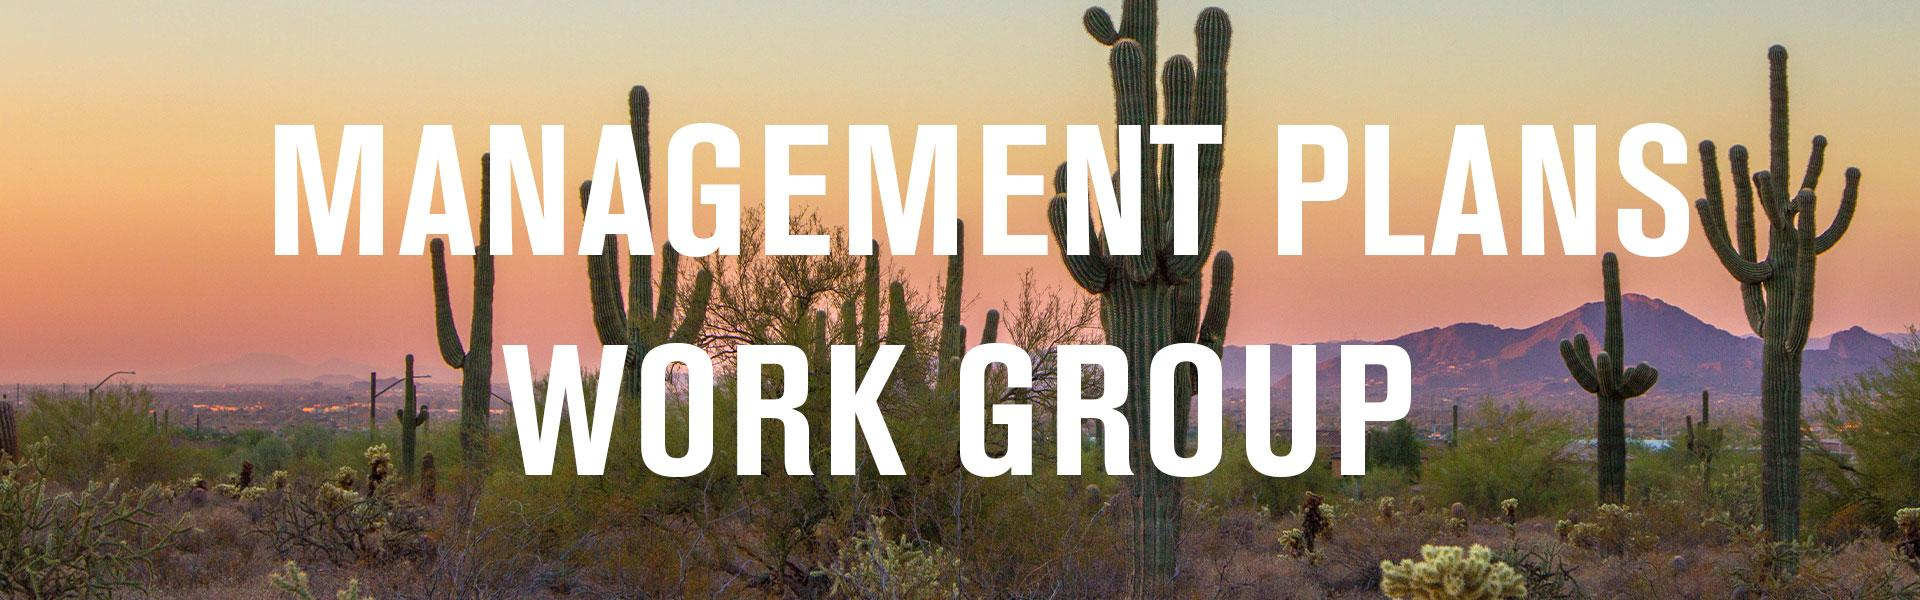 Management Plans Work Group banner